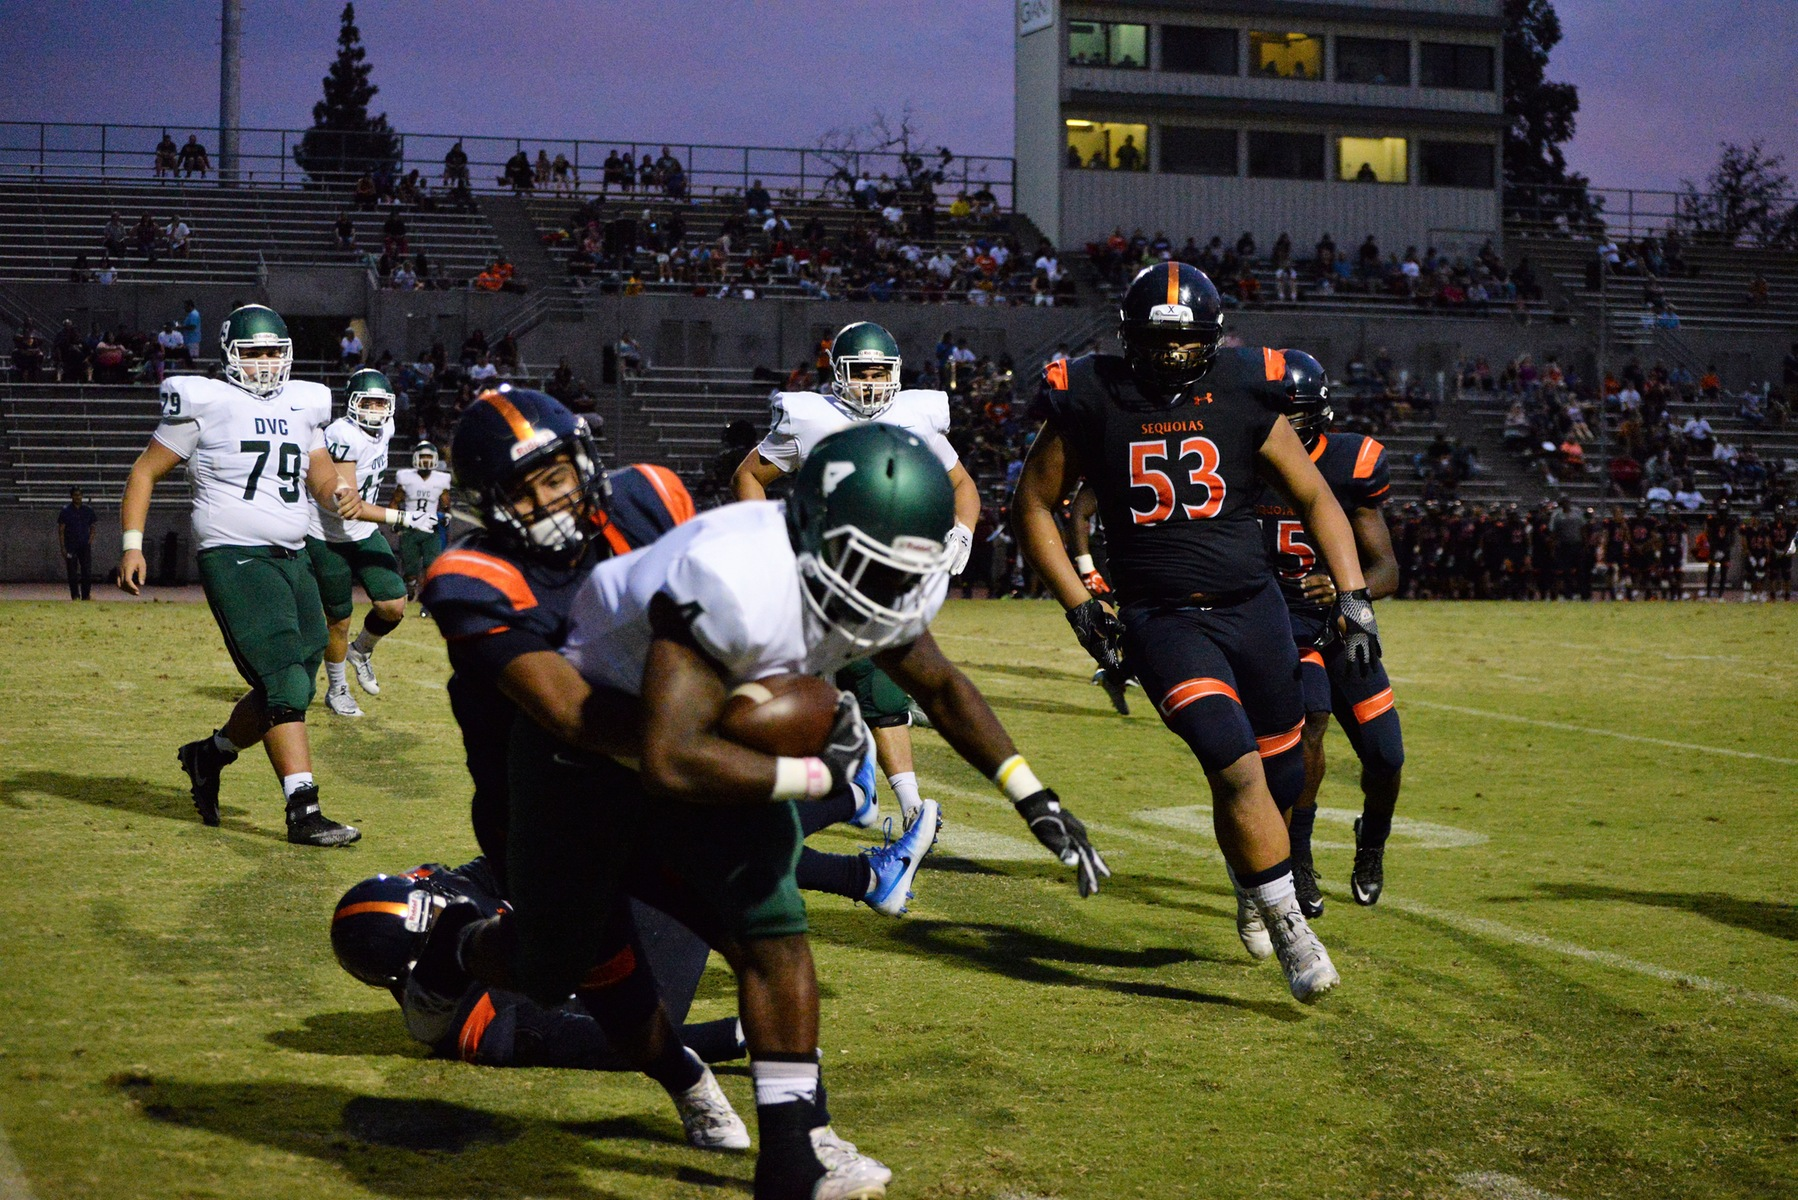 Giants fall at No. 7 Laney College